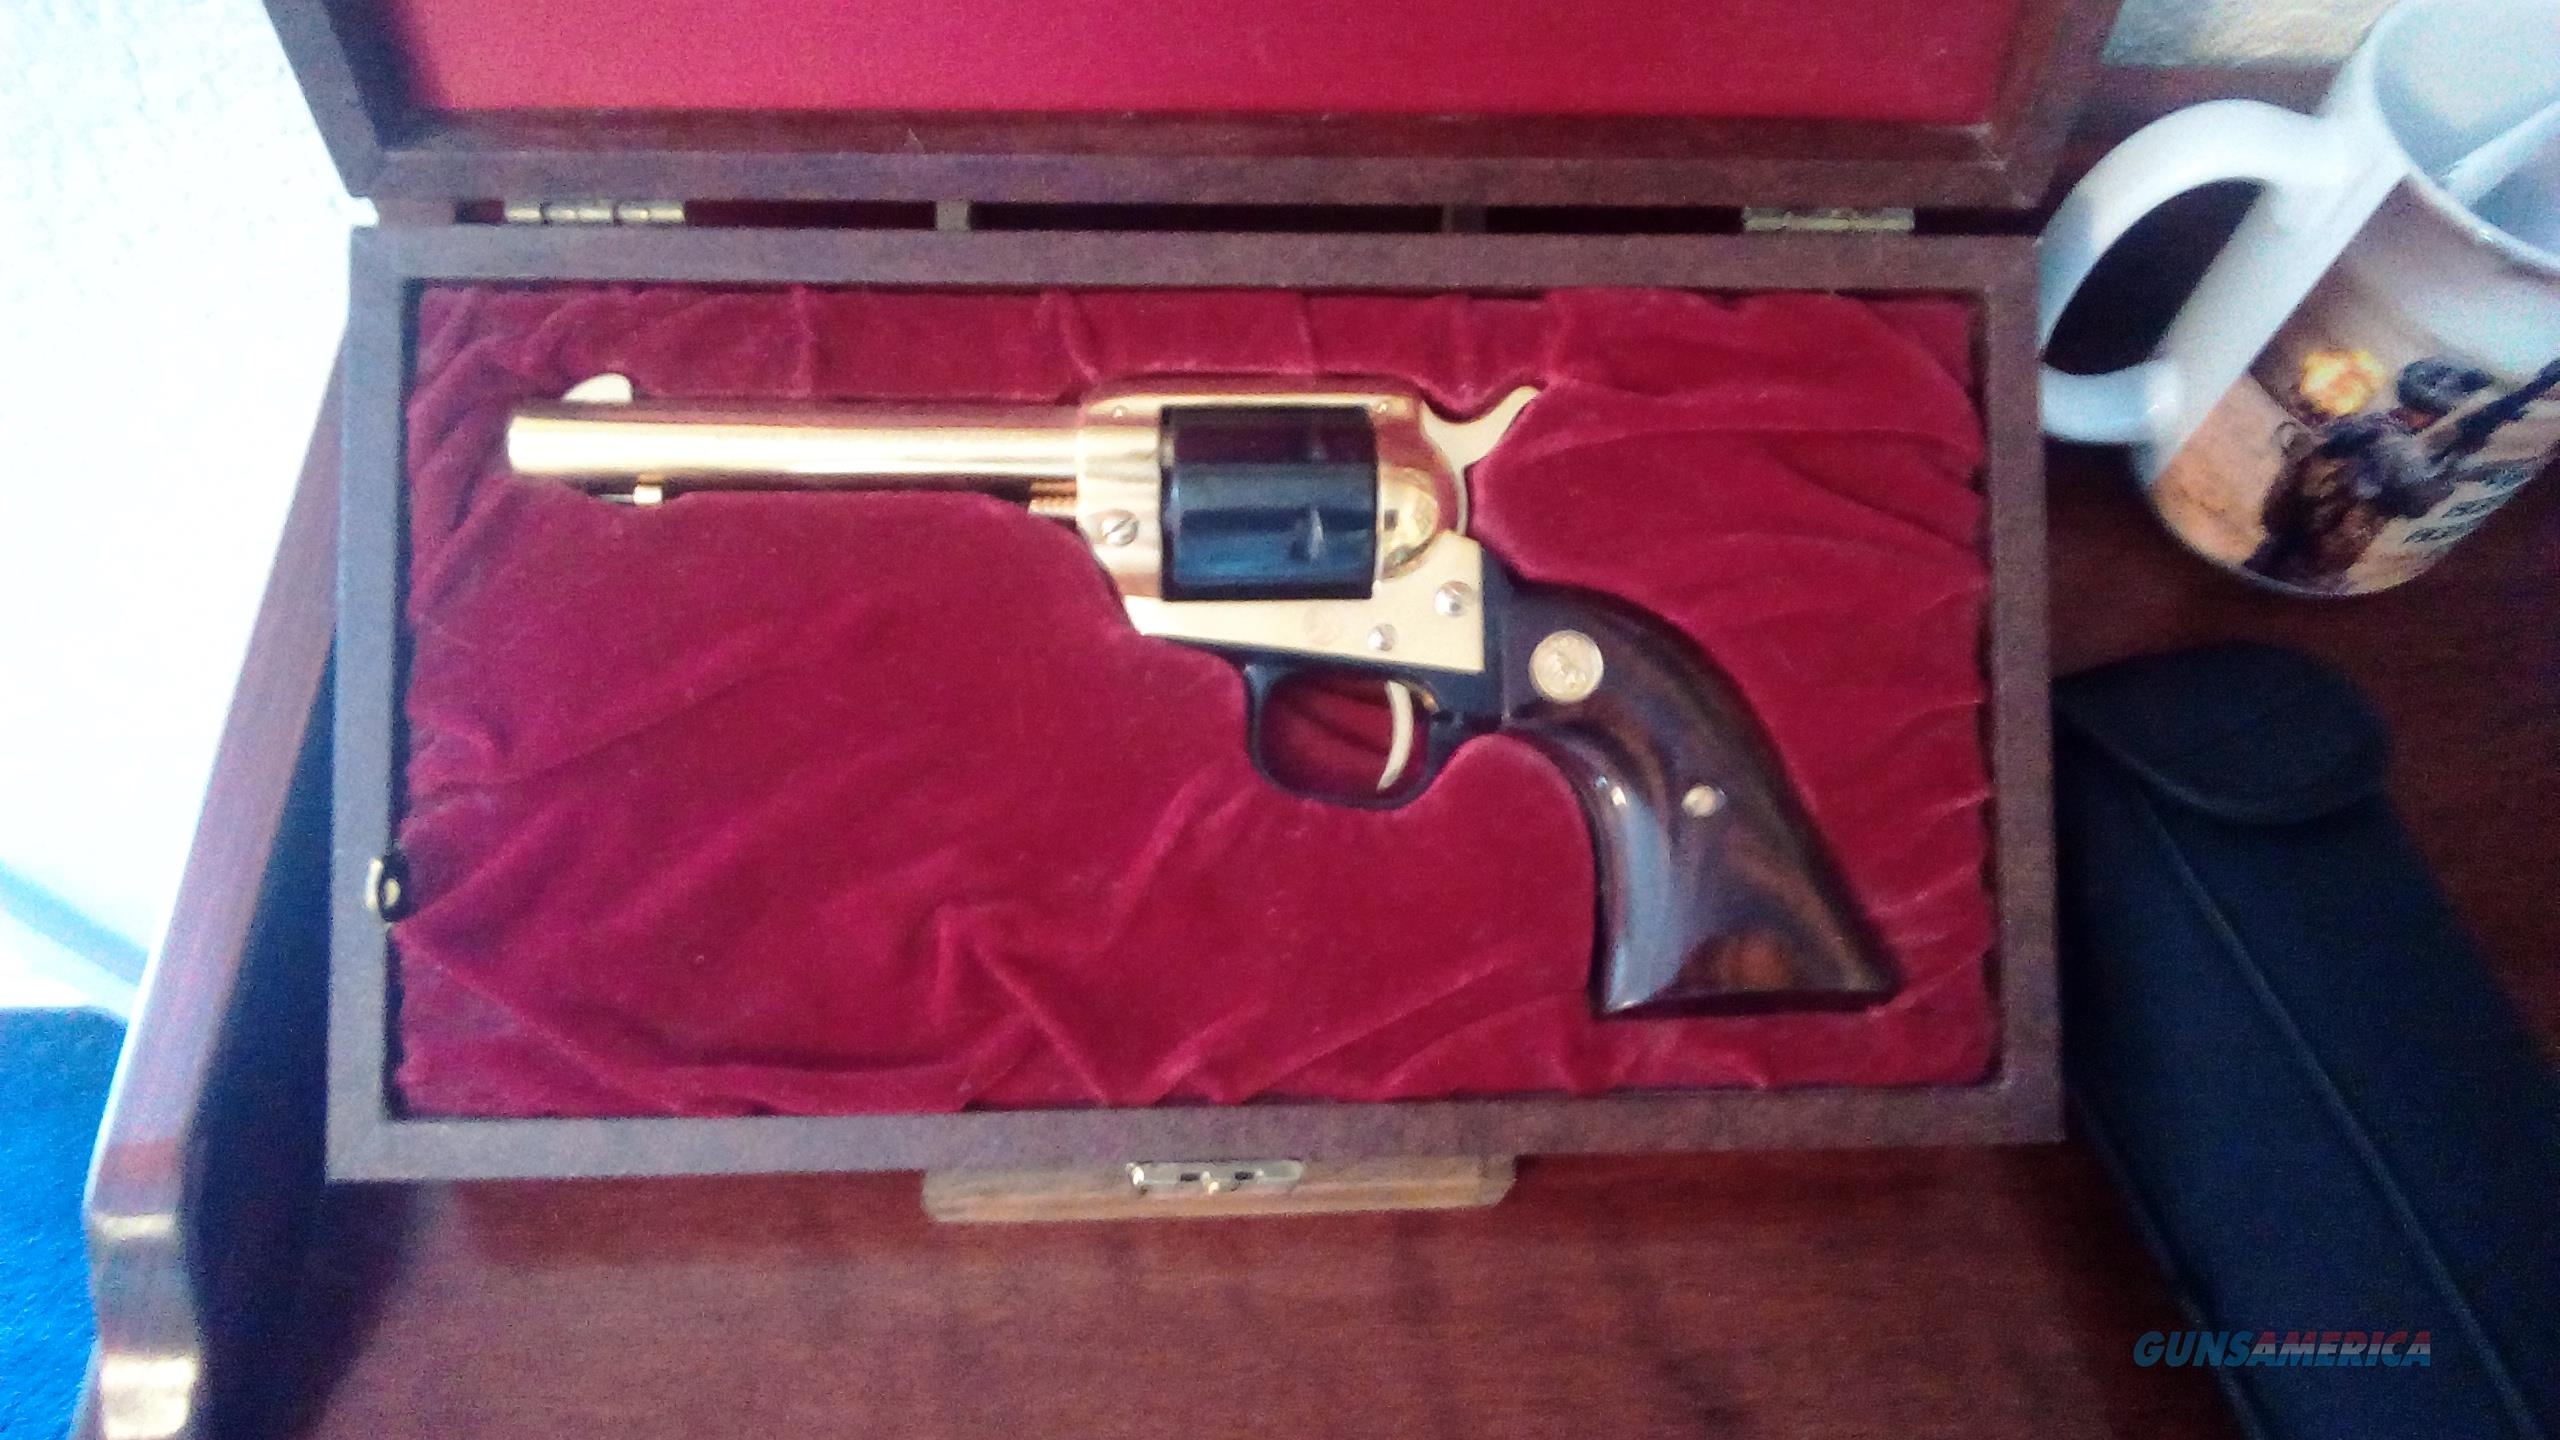 Colt Frontier Scout Gen. Nathan Bedford Forrest commemorative in box  Guns > Pistols > Colt Single Action Revolvers - Modern (22 Cal.)